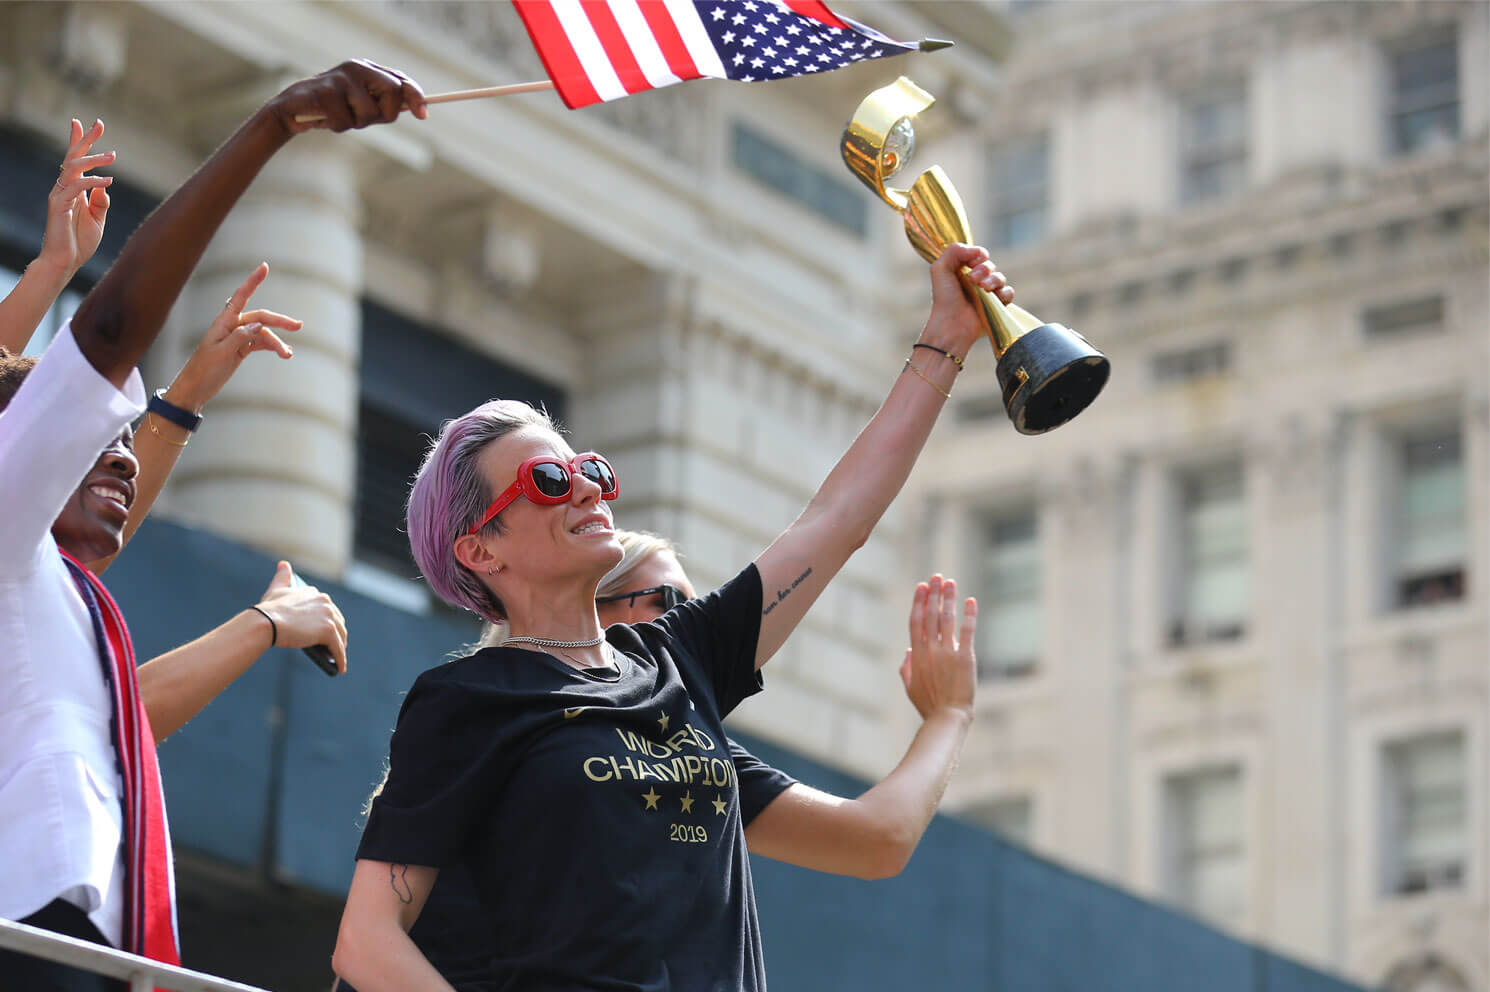 Megan Rapinoe holds the Women's World Cup trophy as the U.S. women's soccer team is celebrated with a parade along the Canyon of Heroes, Wednesday, July 10, 2019, in New York.